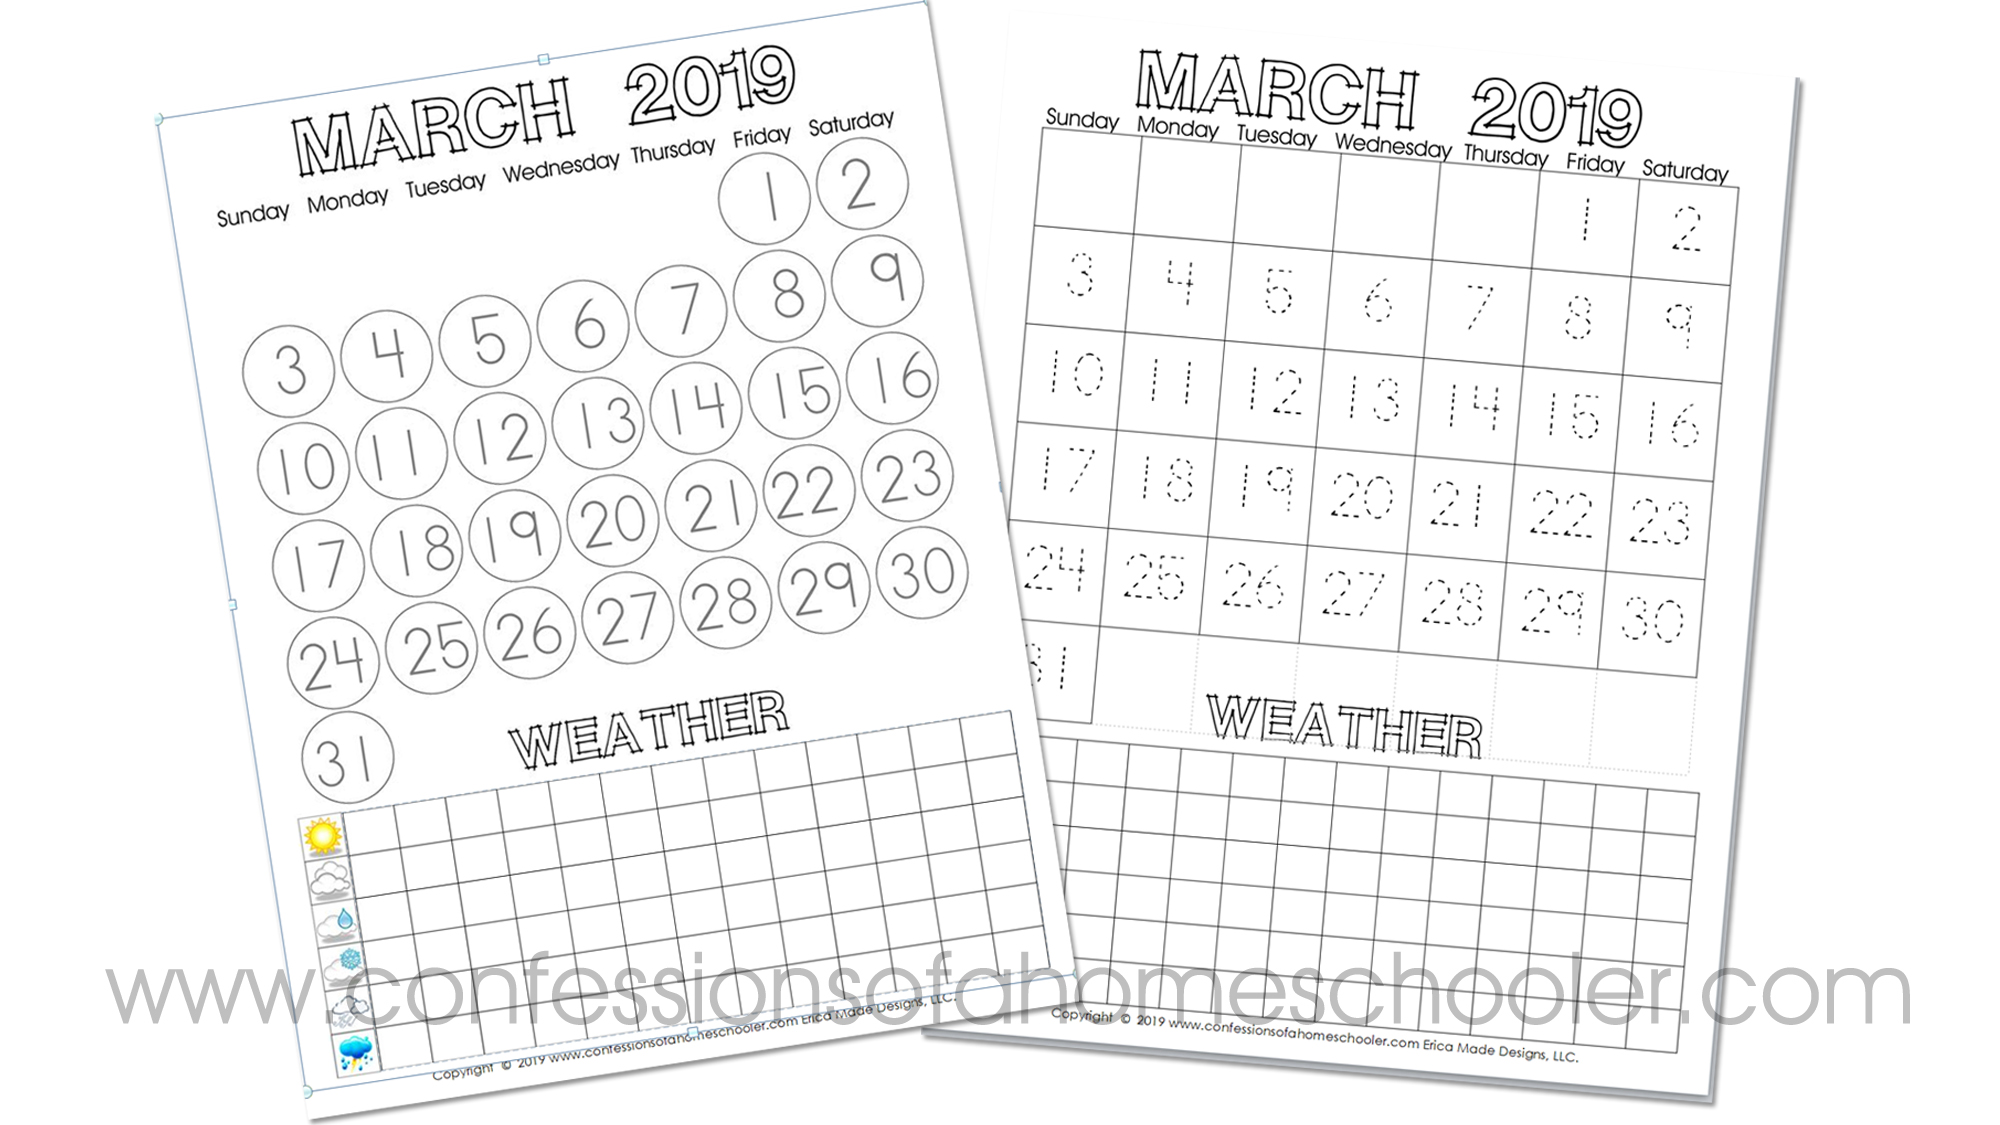 Printable Calendar March 2019.March 2019 Printable Calendar Confessions Of A Homeschooler